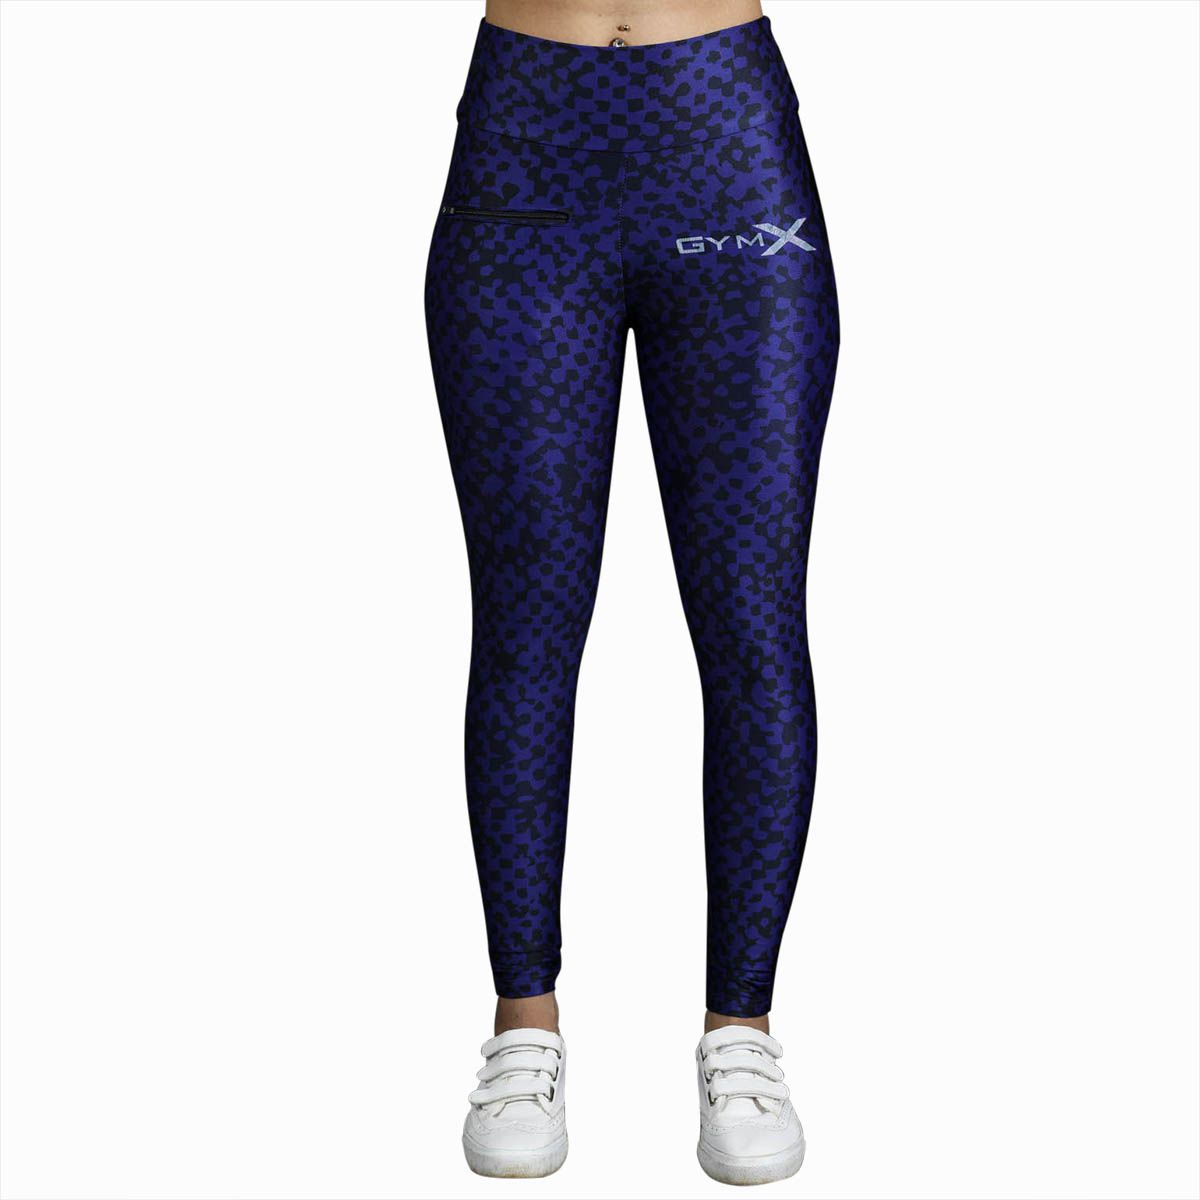 GymX Womens Polyester Allure Leggings: Black Cheetah Skin-Black (Size-X-Large)